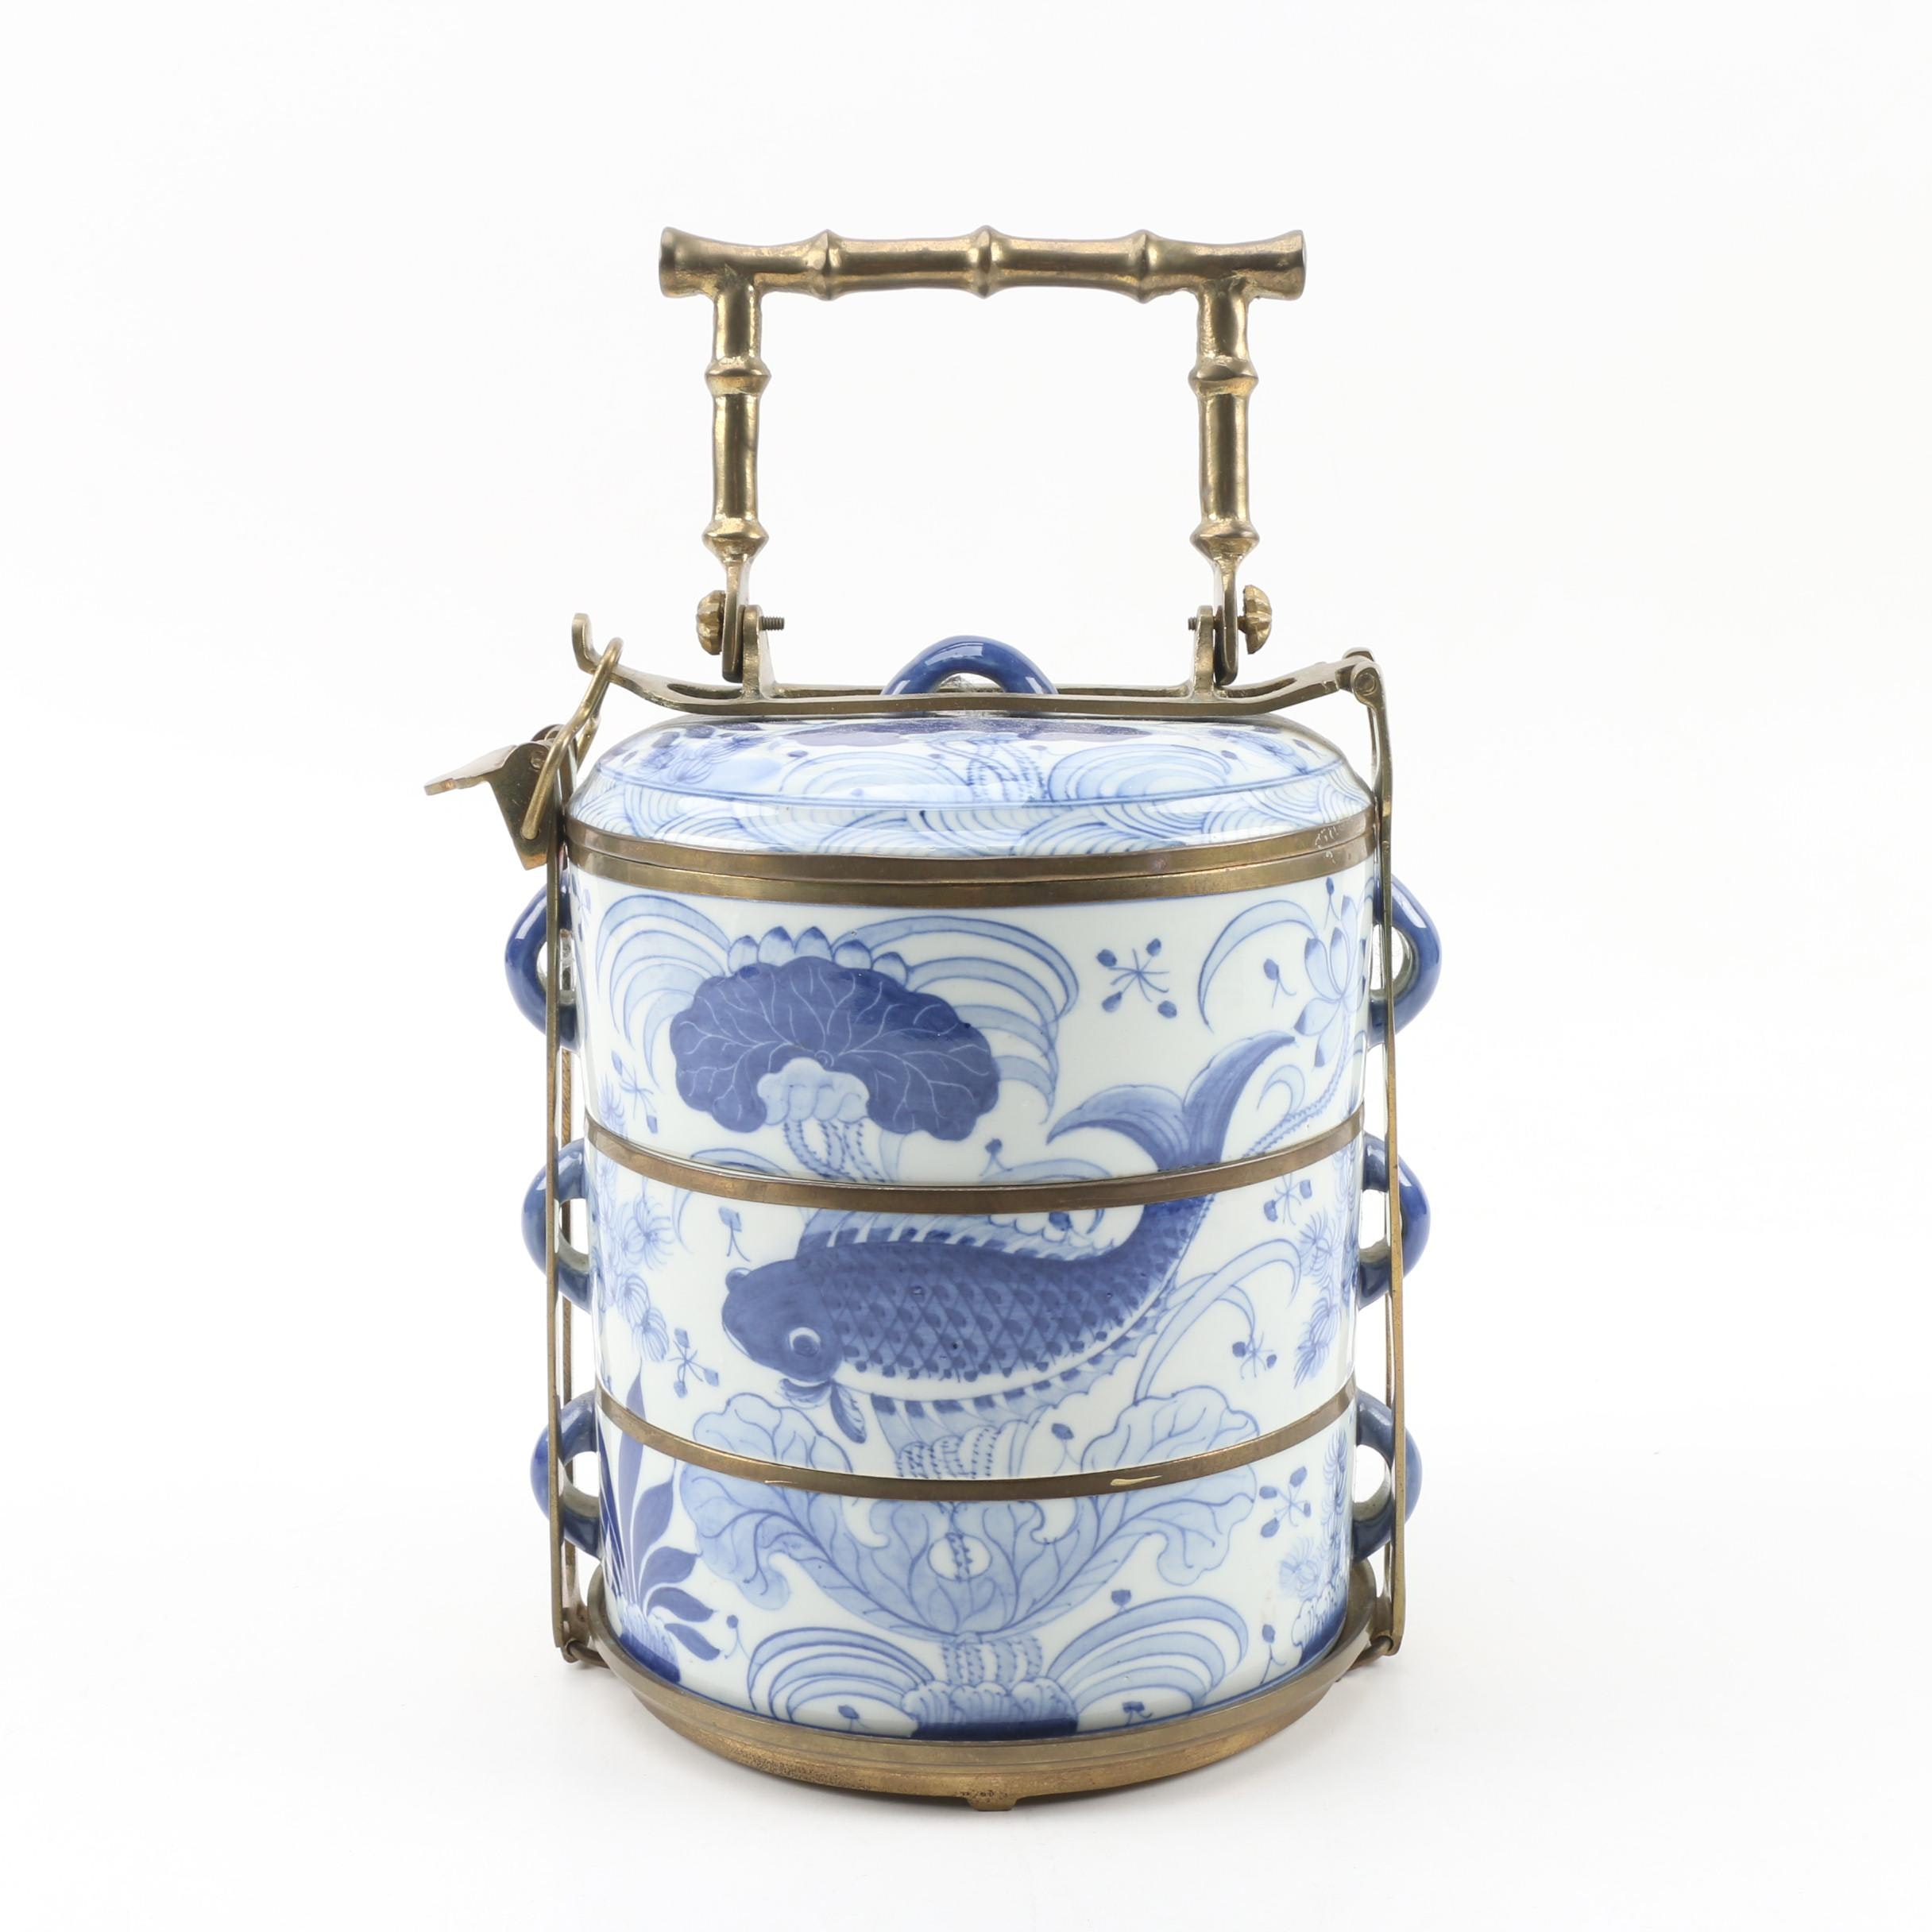 Chinese Tiered Porcelain Tiffin Box with Brass Carrier